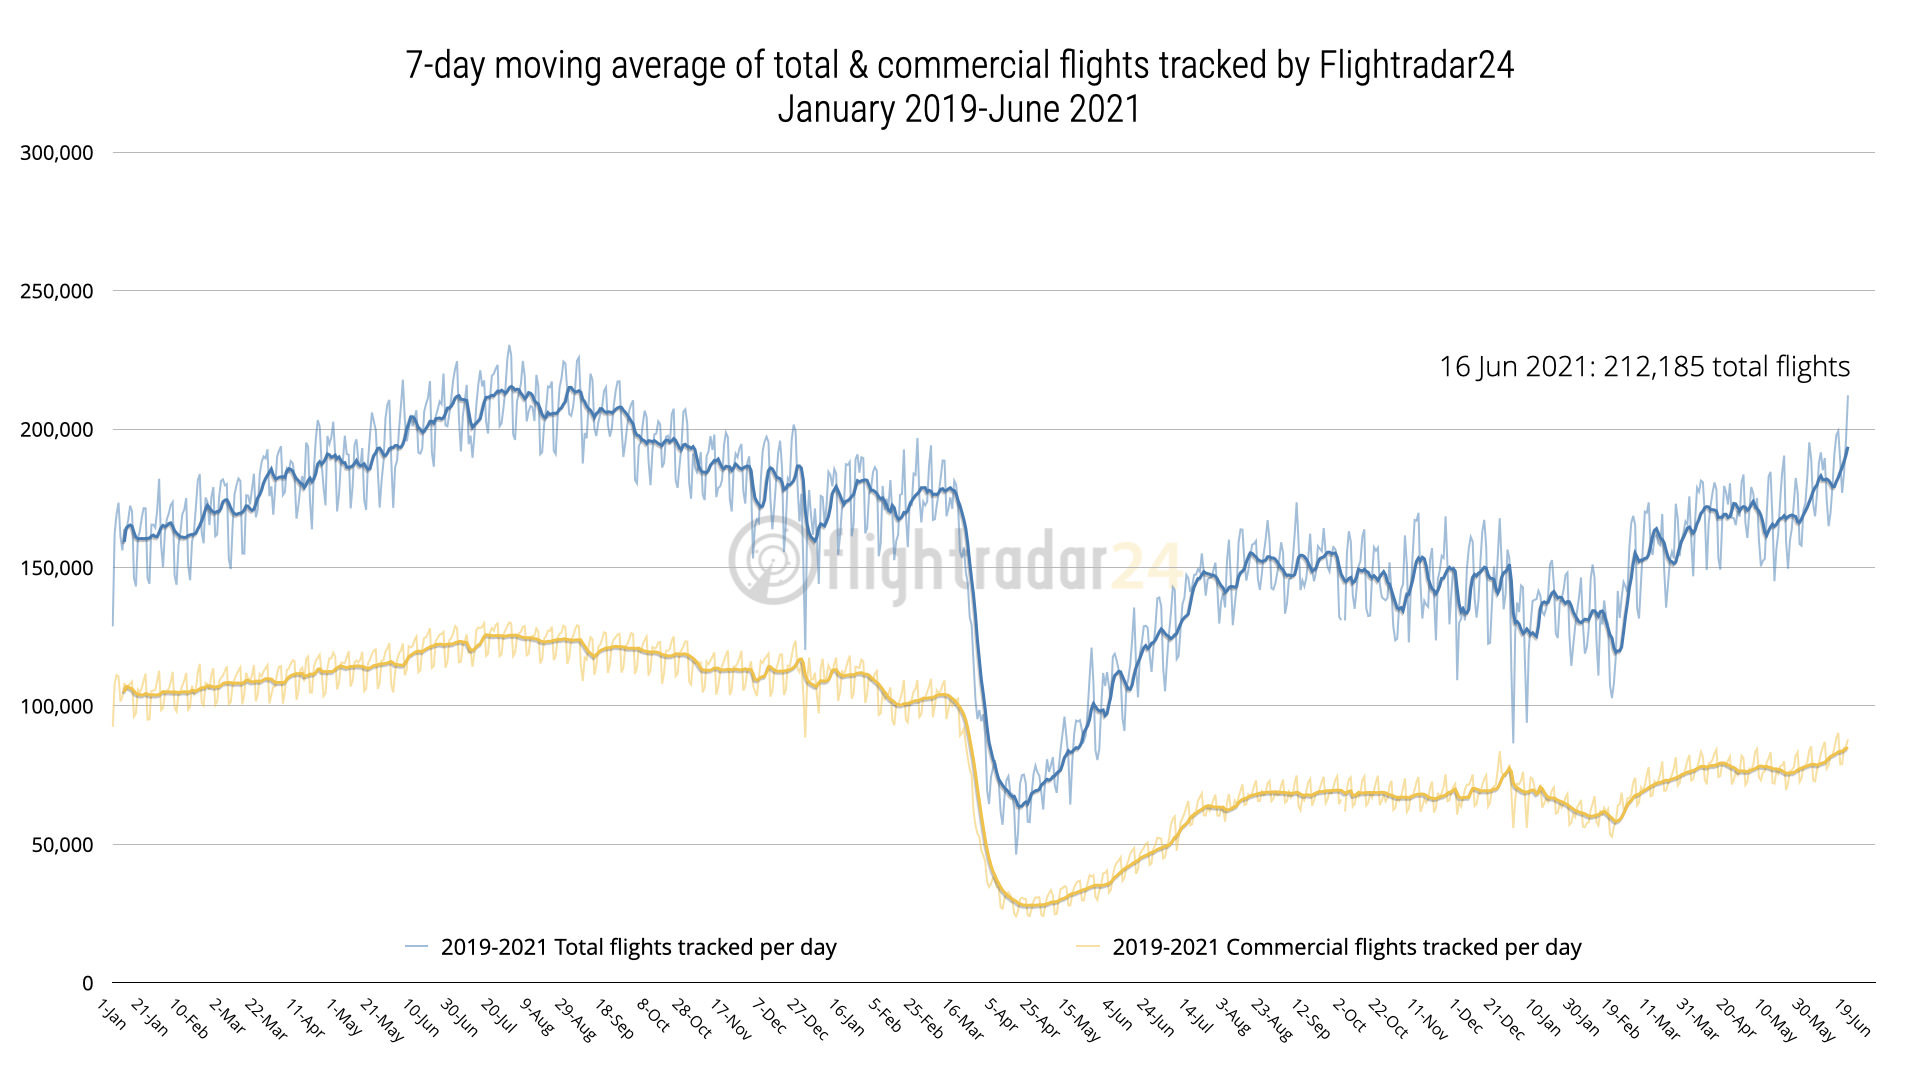 Graph showing commercial and total flights from2019-2021